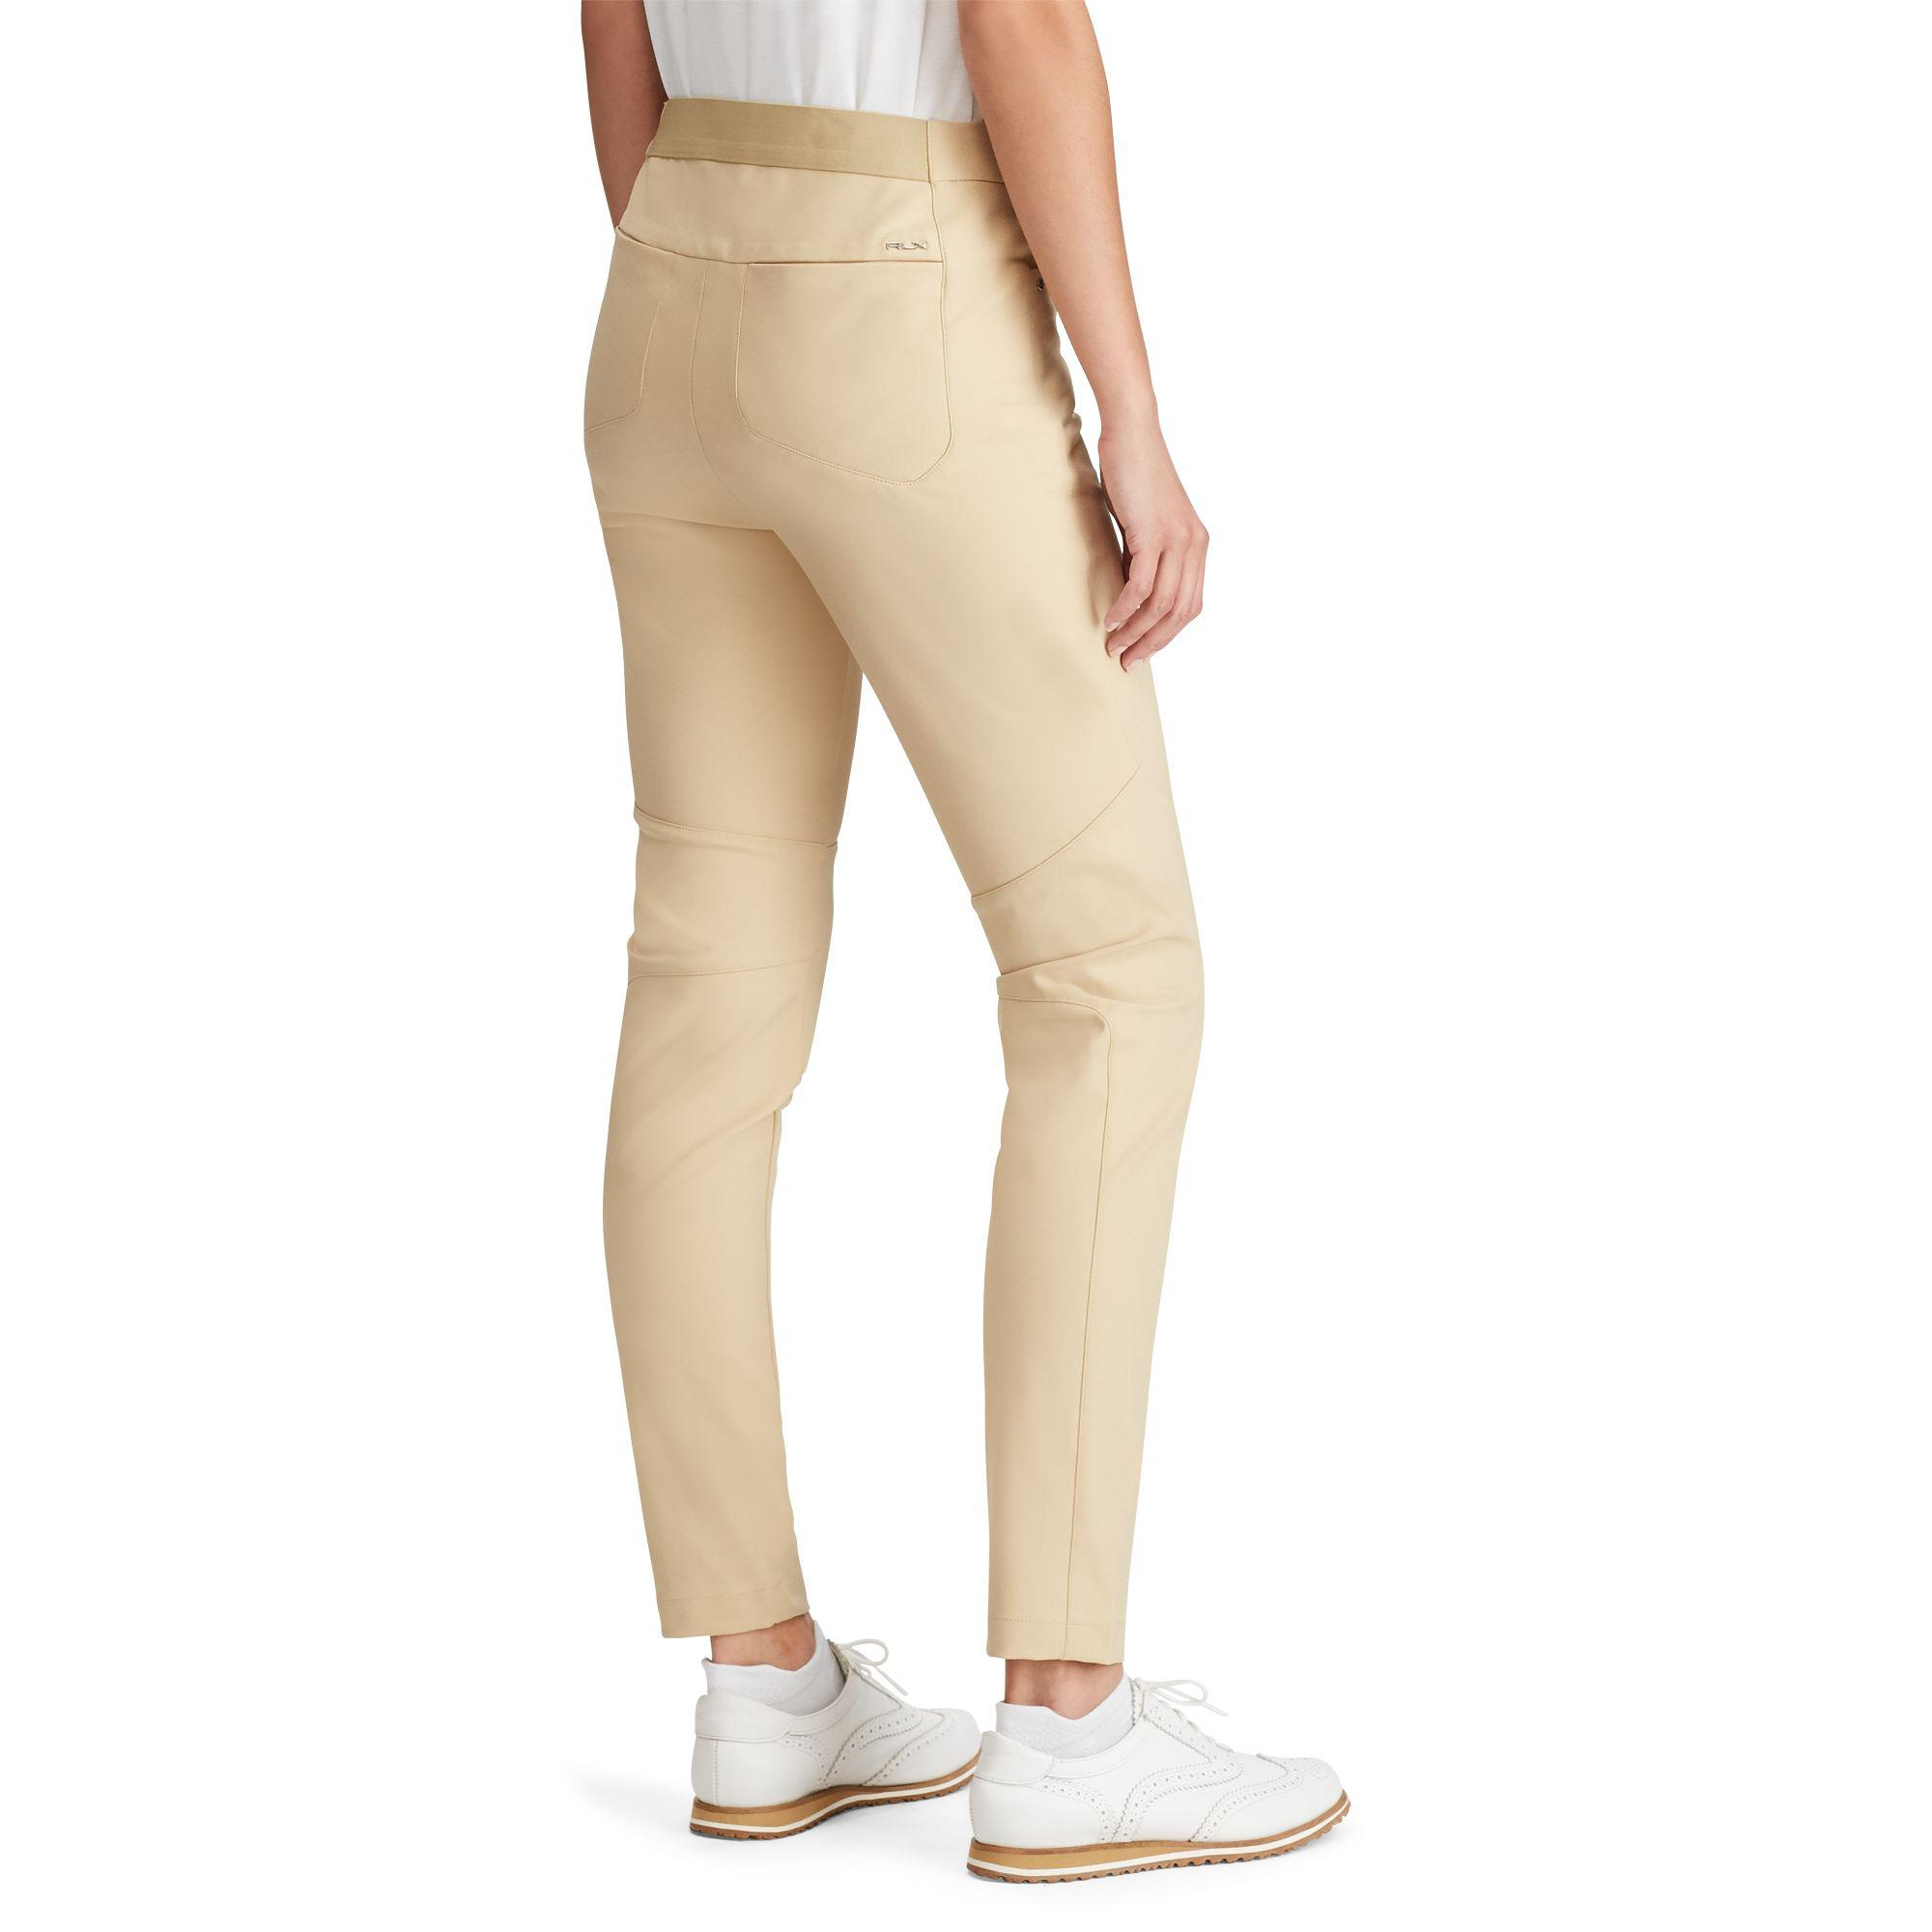 599403cc35aa Ralph Lauren Stretch Twill Skinny Pant in Natural - Save 59% - Lyst